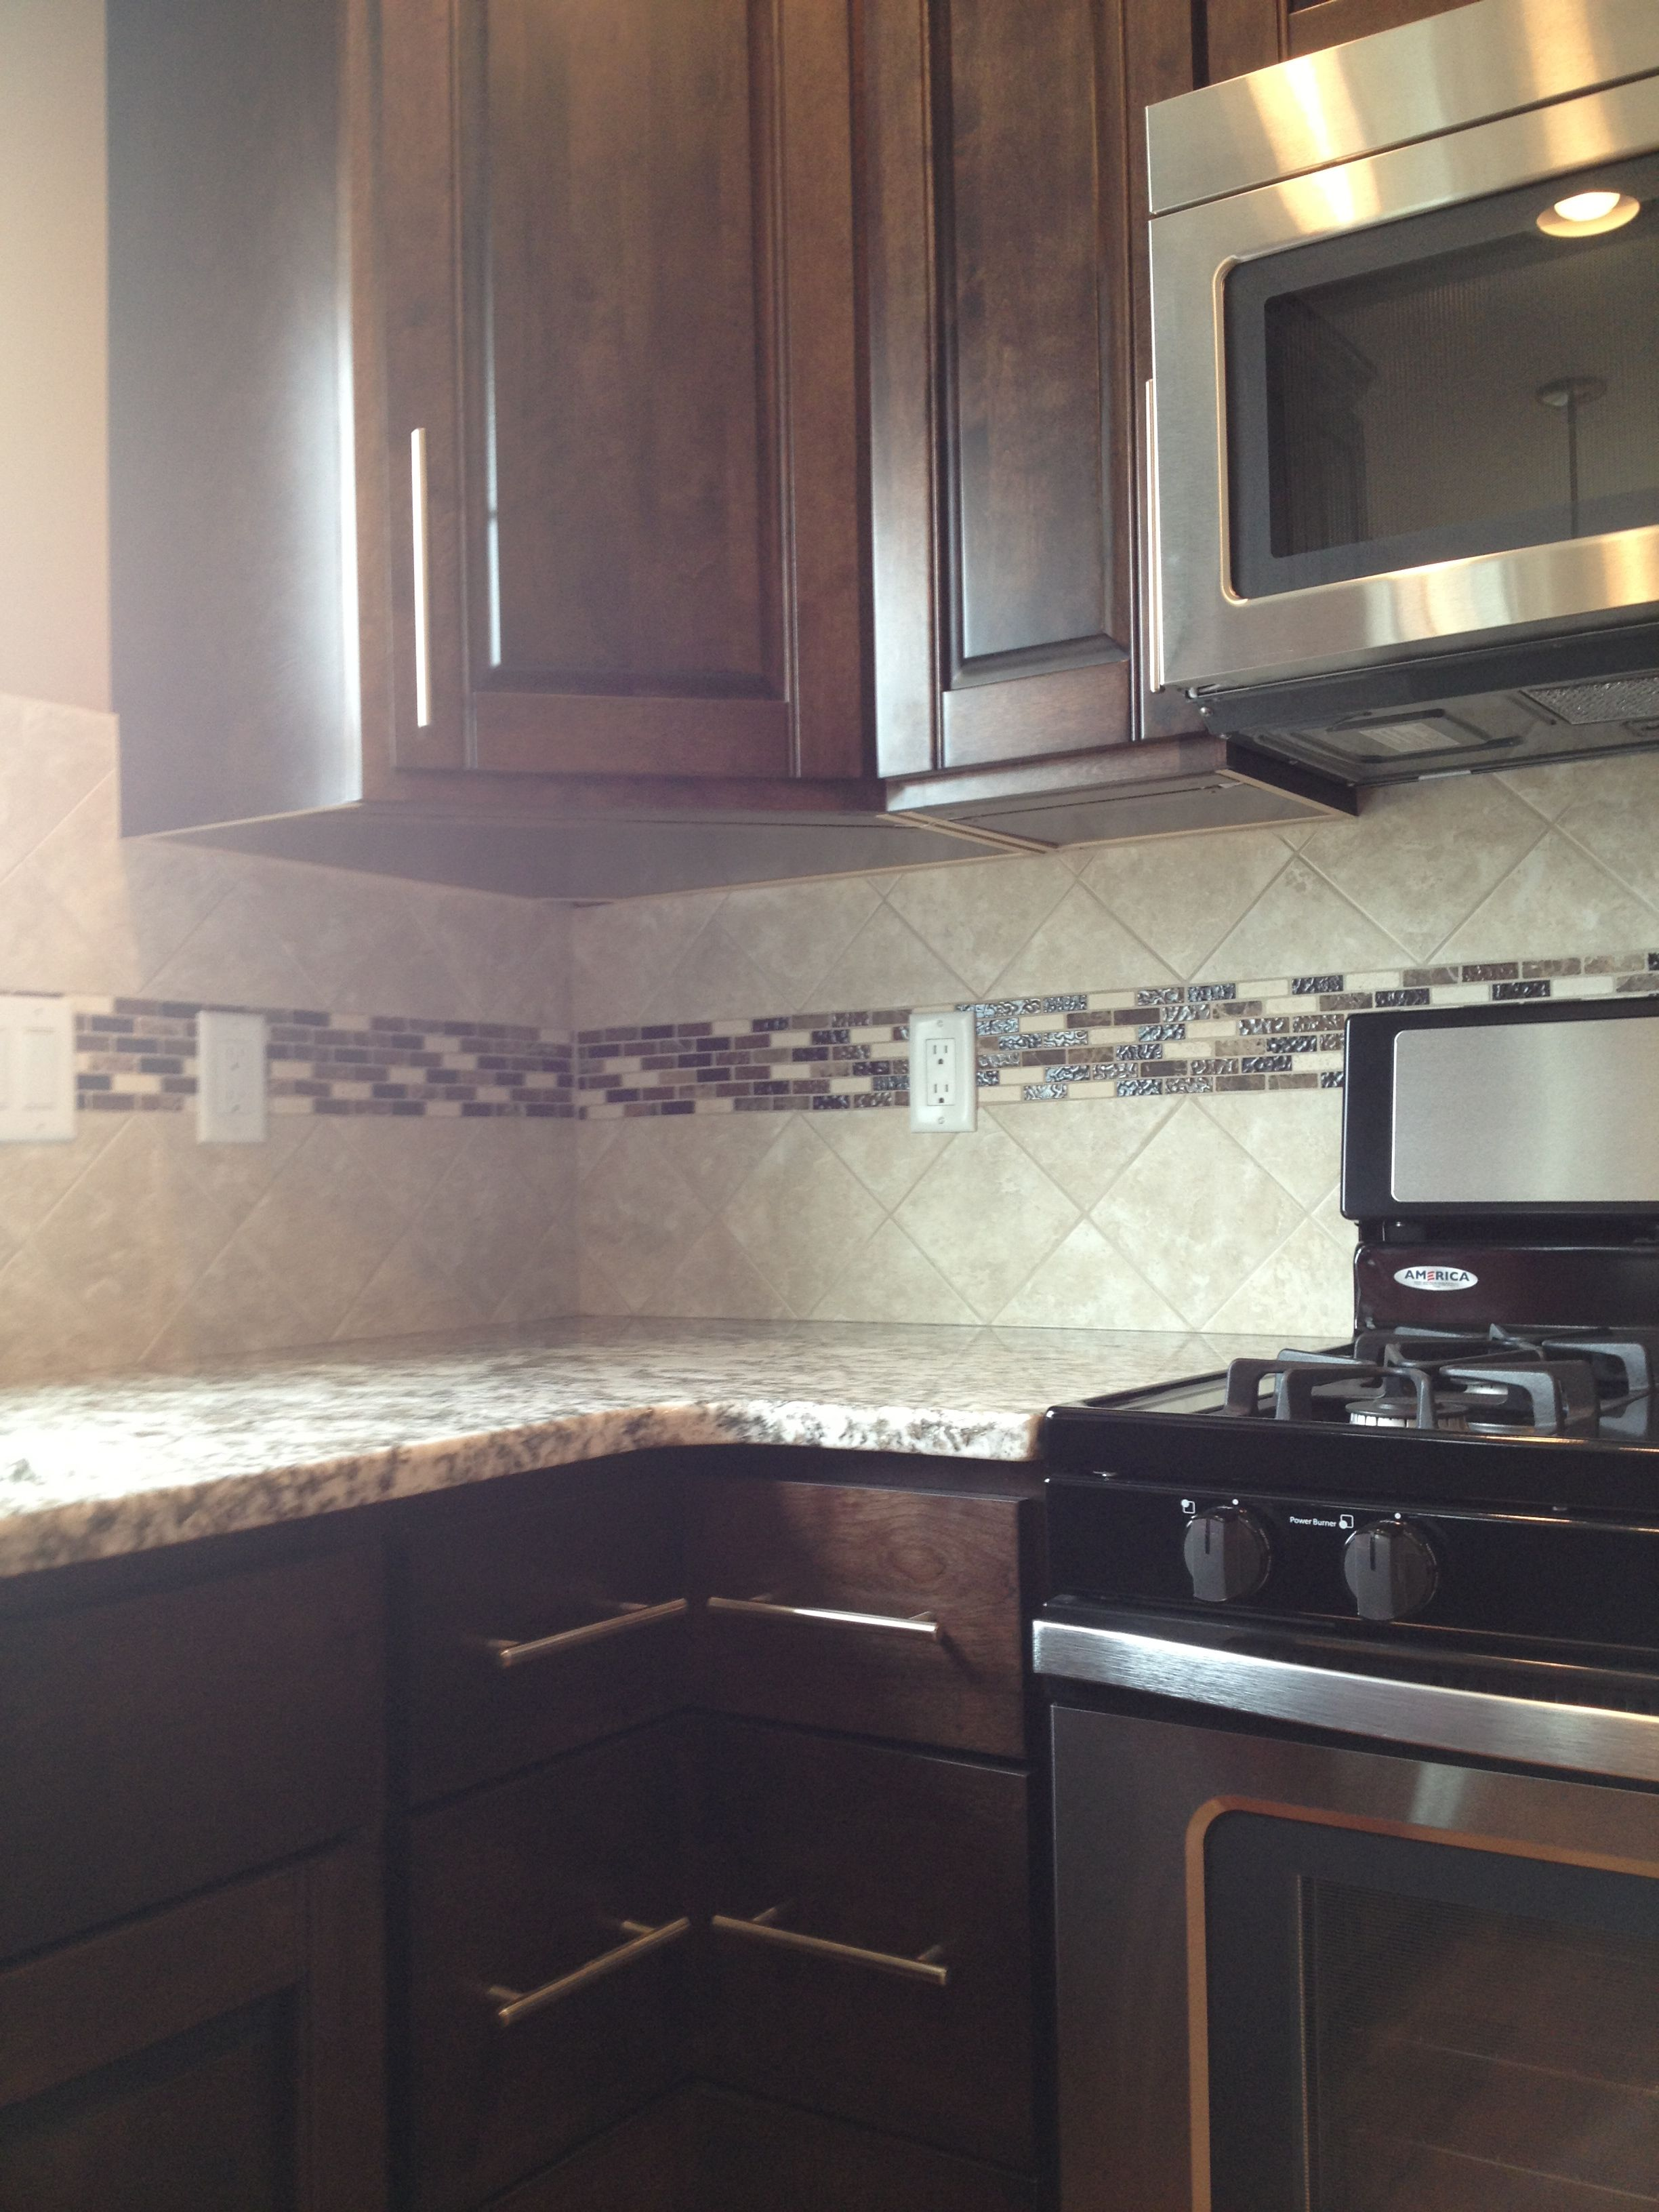 Charmant Kitchen Backsplash With Accent Strip Kitchen Ideas, New Kitchen, Kitchen  Colors, Kitchen Designs